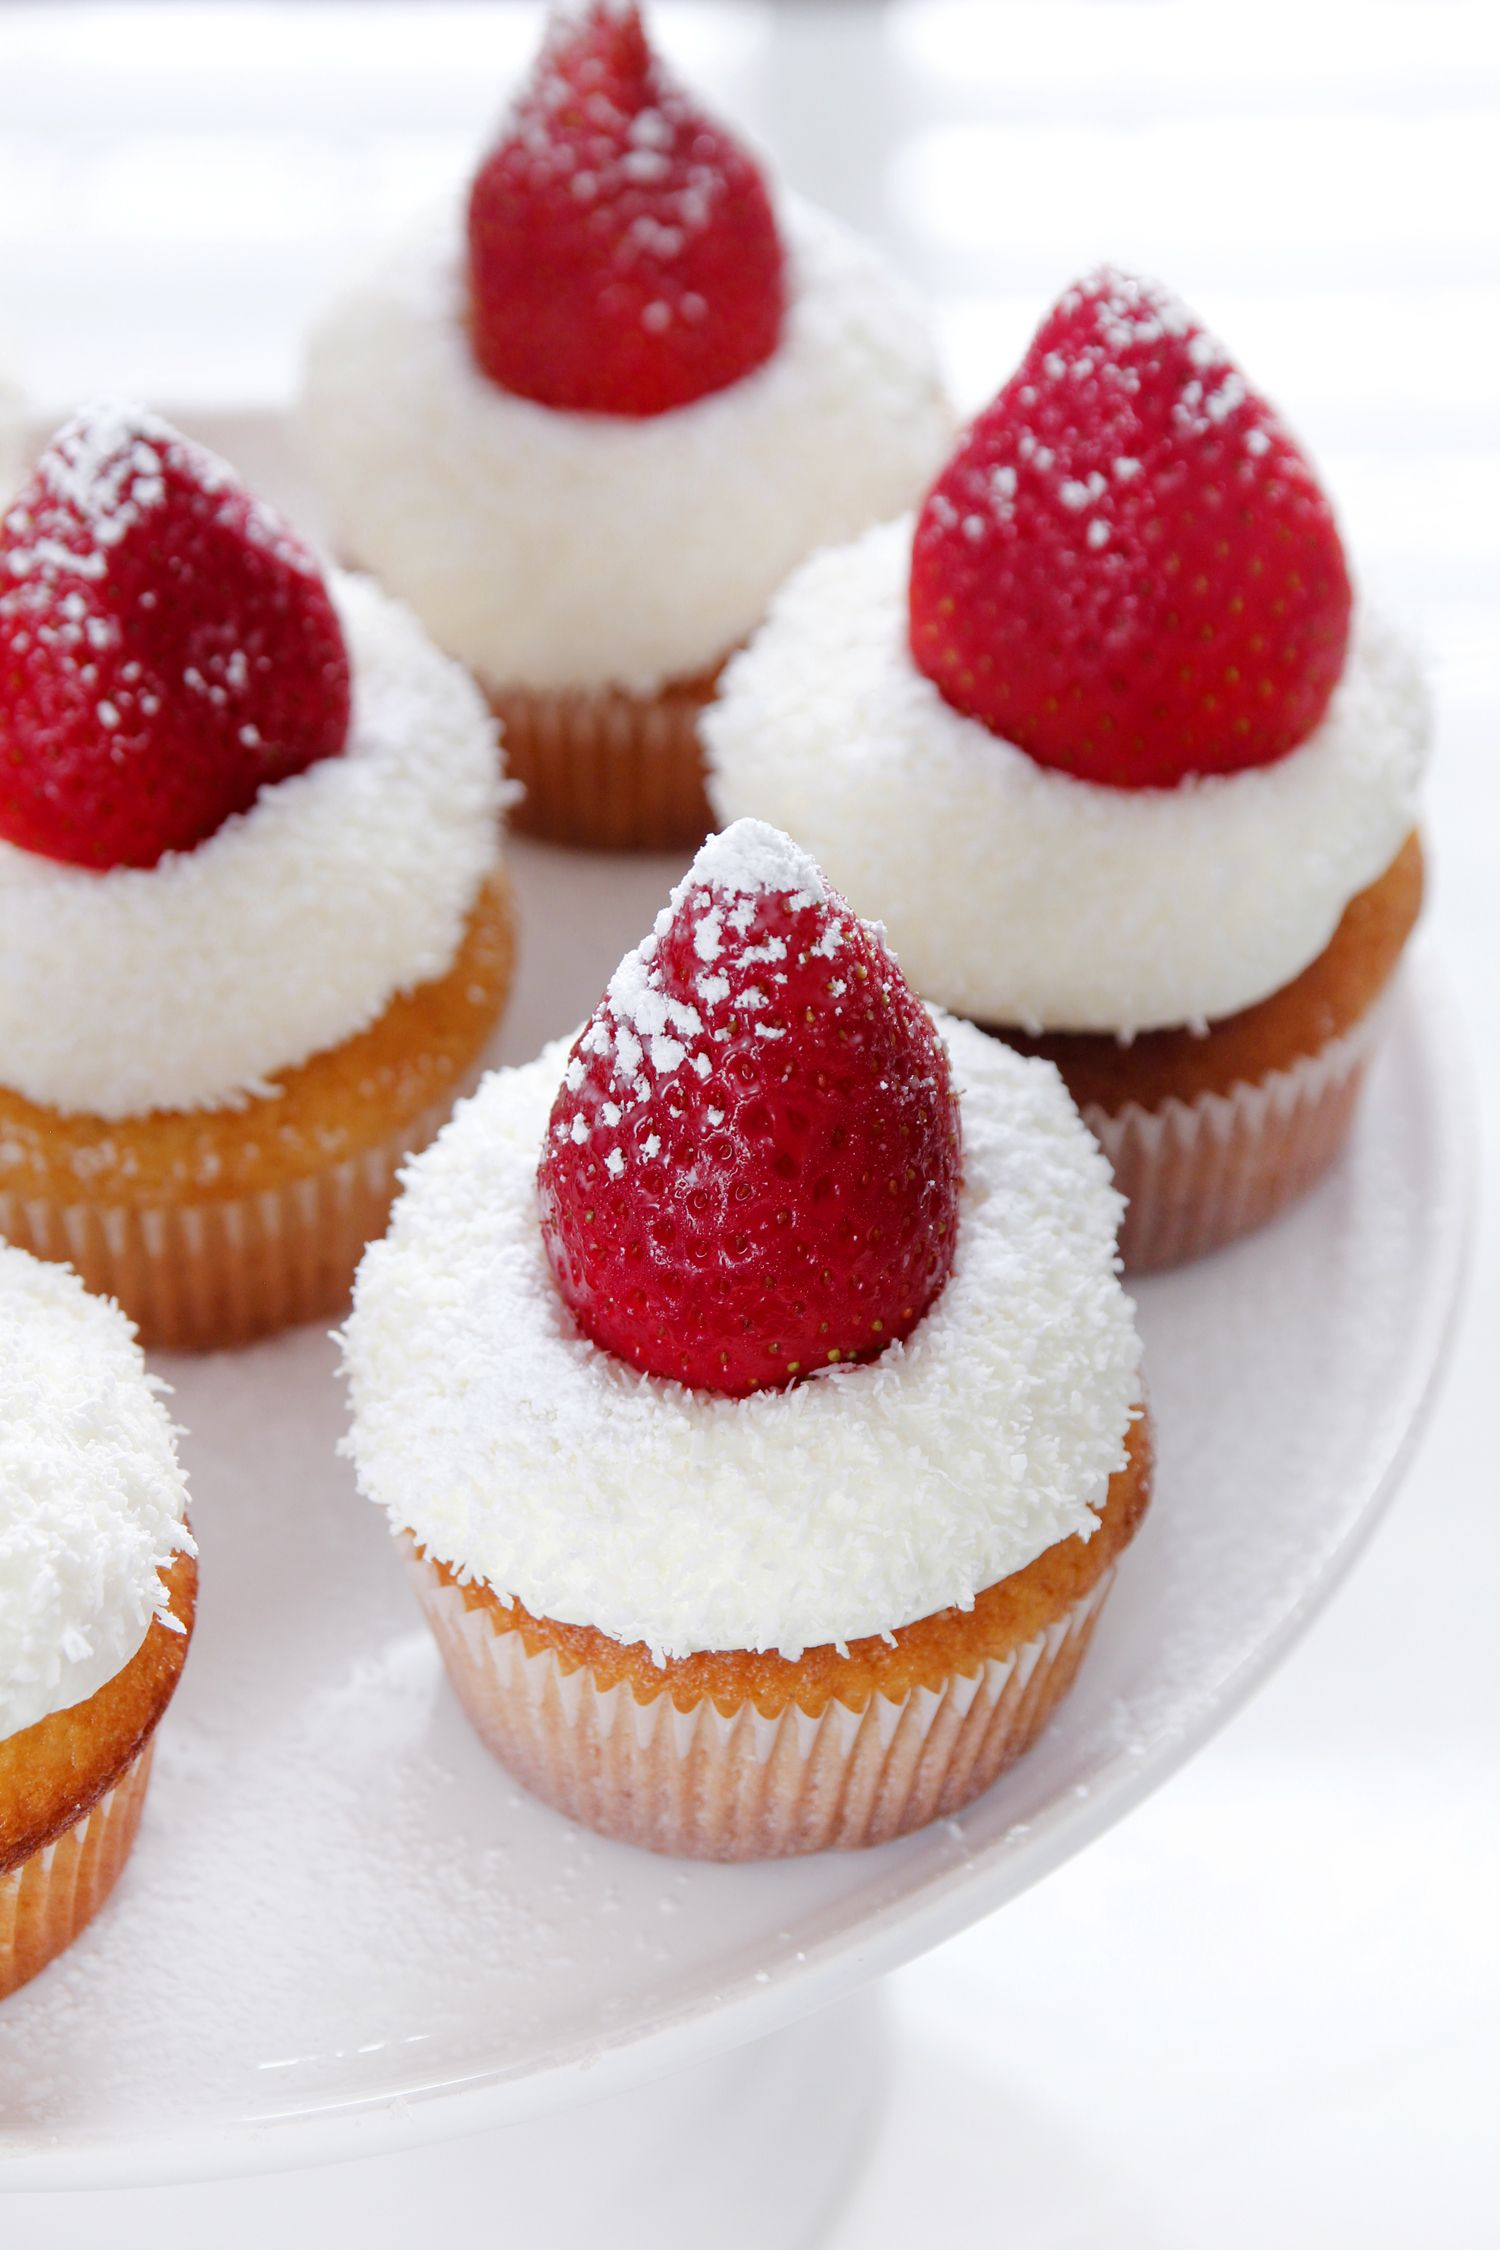 Strawberry Cupcakes with White Chocolate Frosting | Lil ...